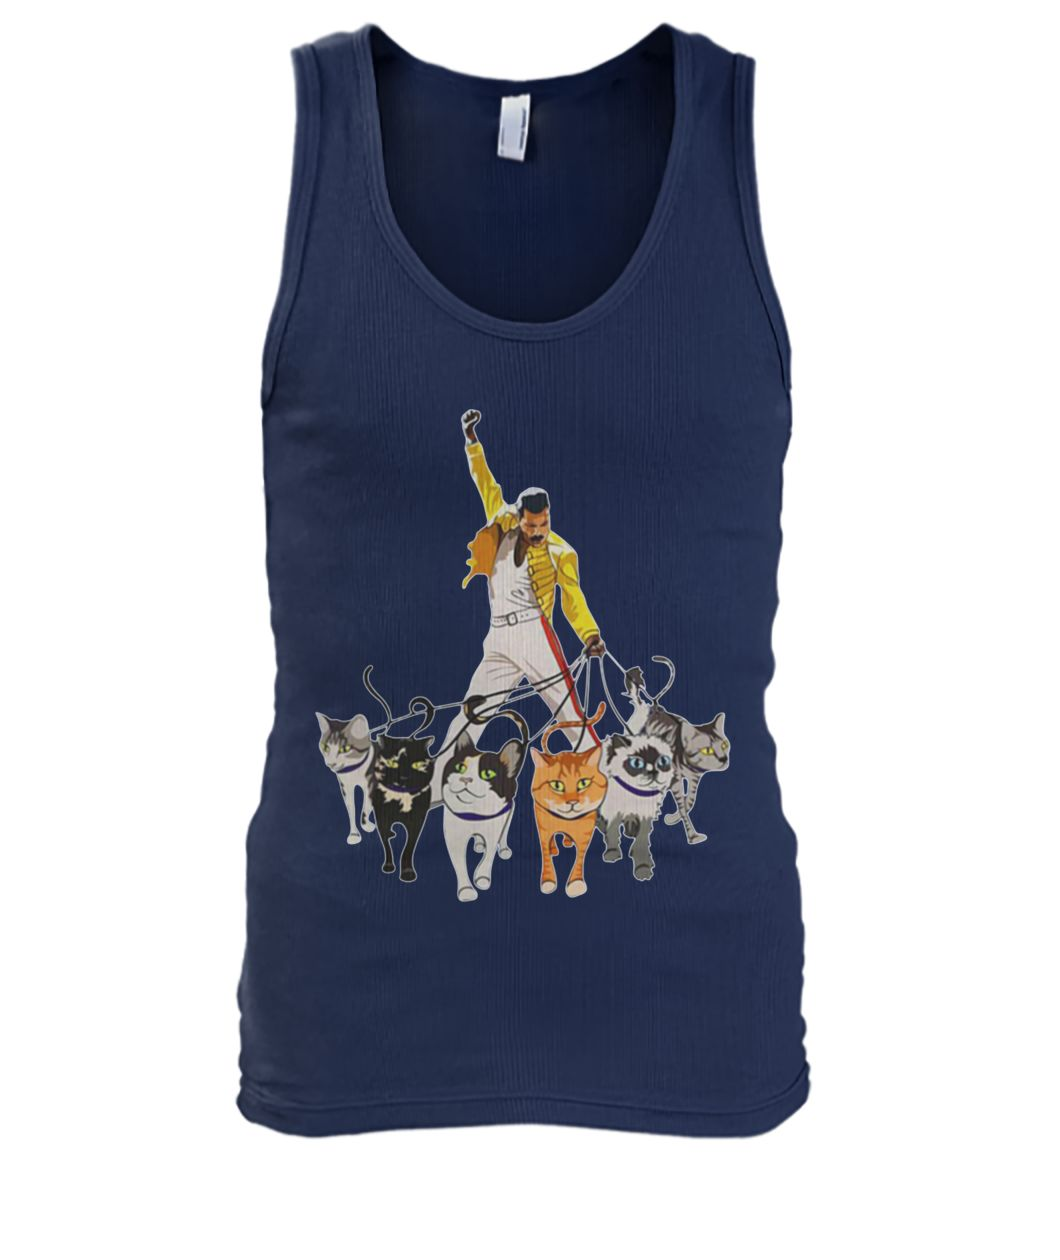 Freddie mercury and cats men's tank top